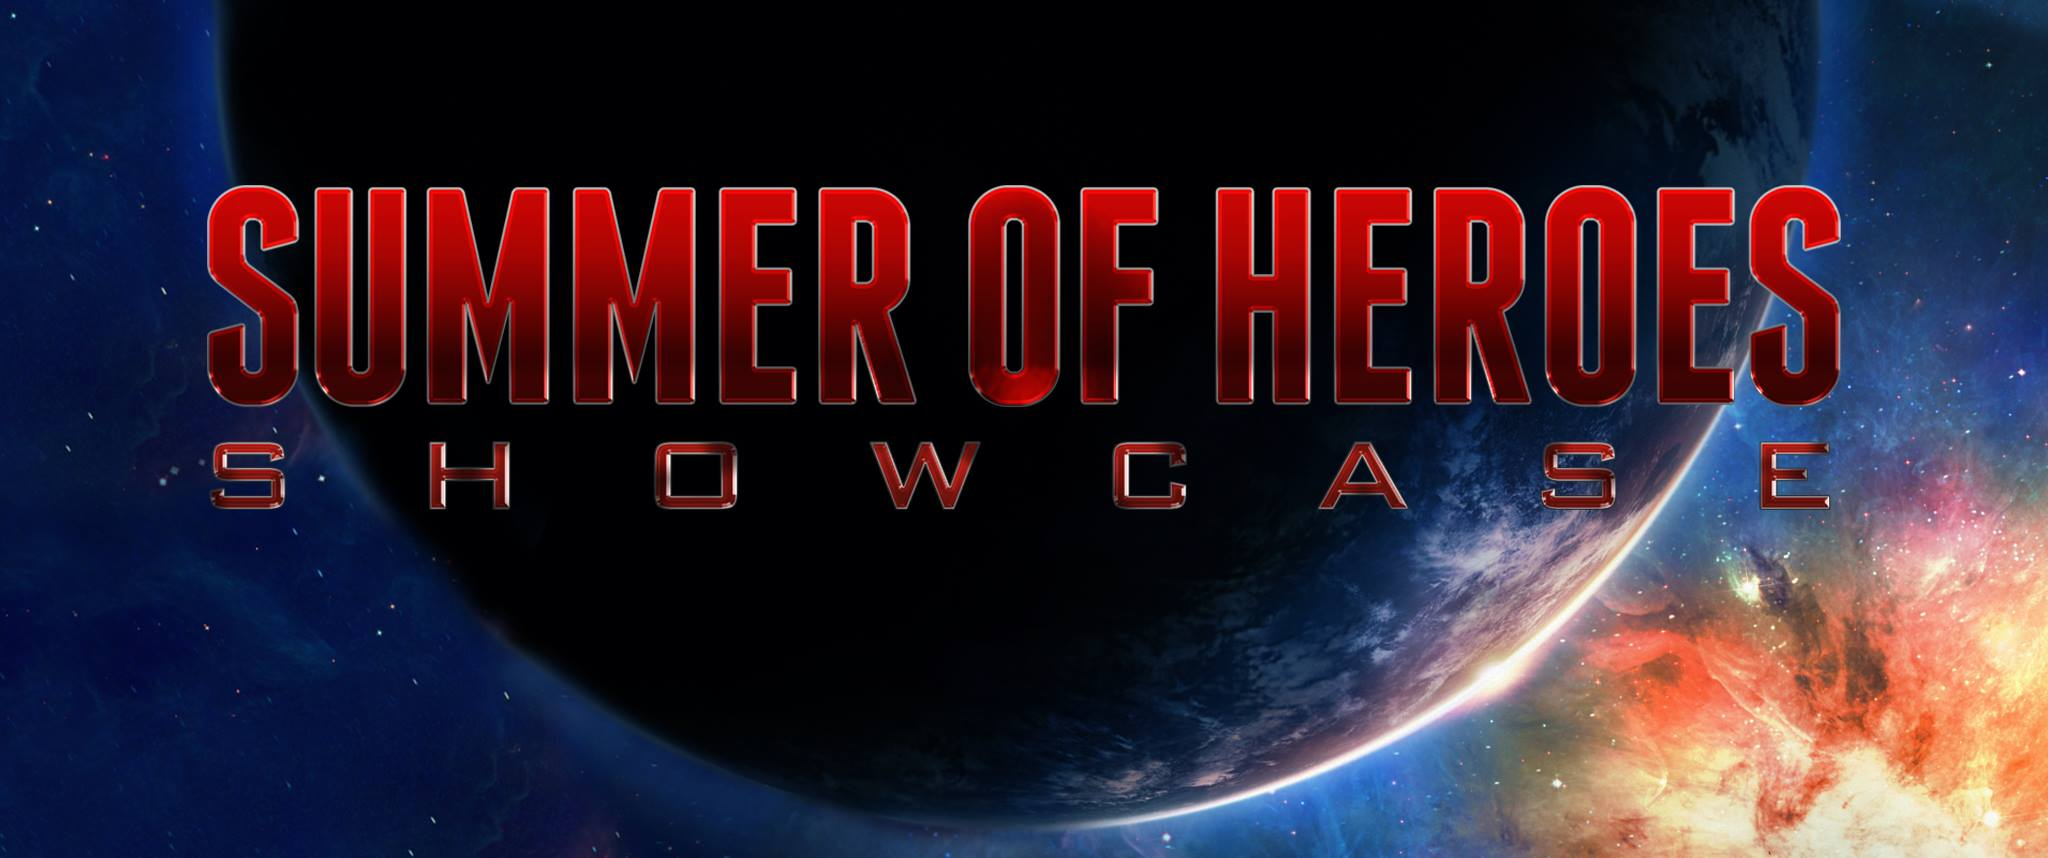 Summer of Heroes Showcase Coming to Disneyland Resort with AP Preview Tonight